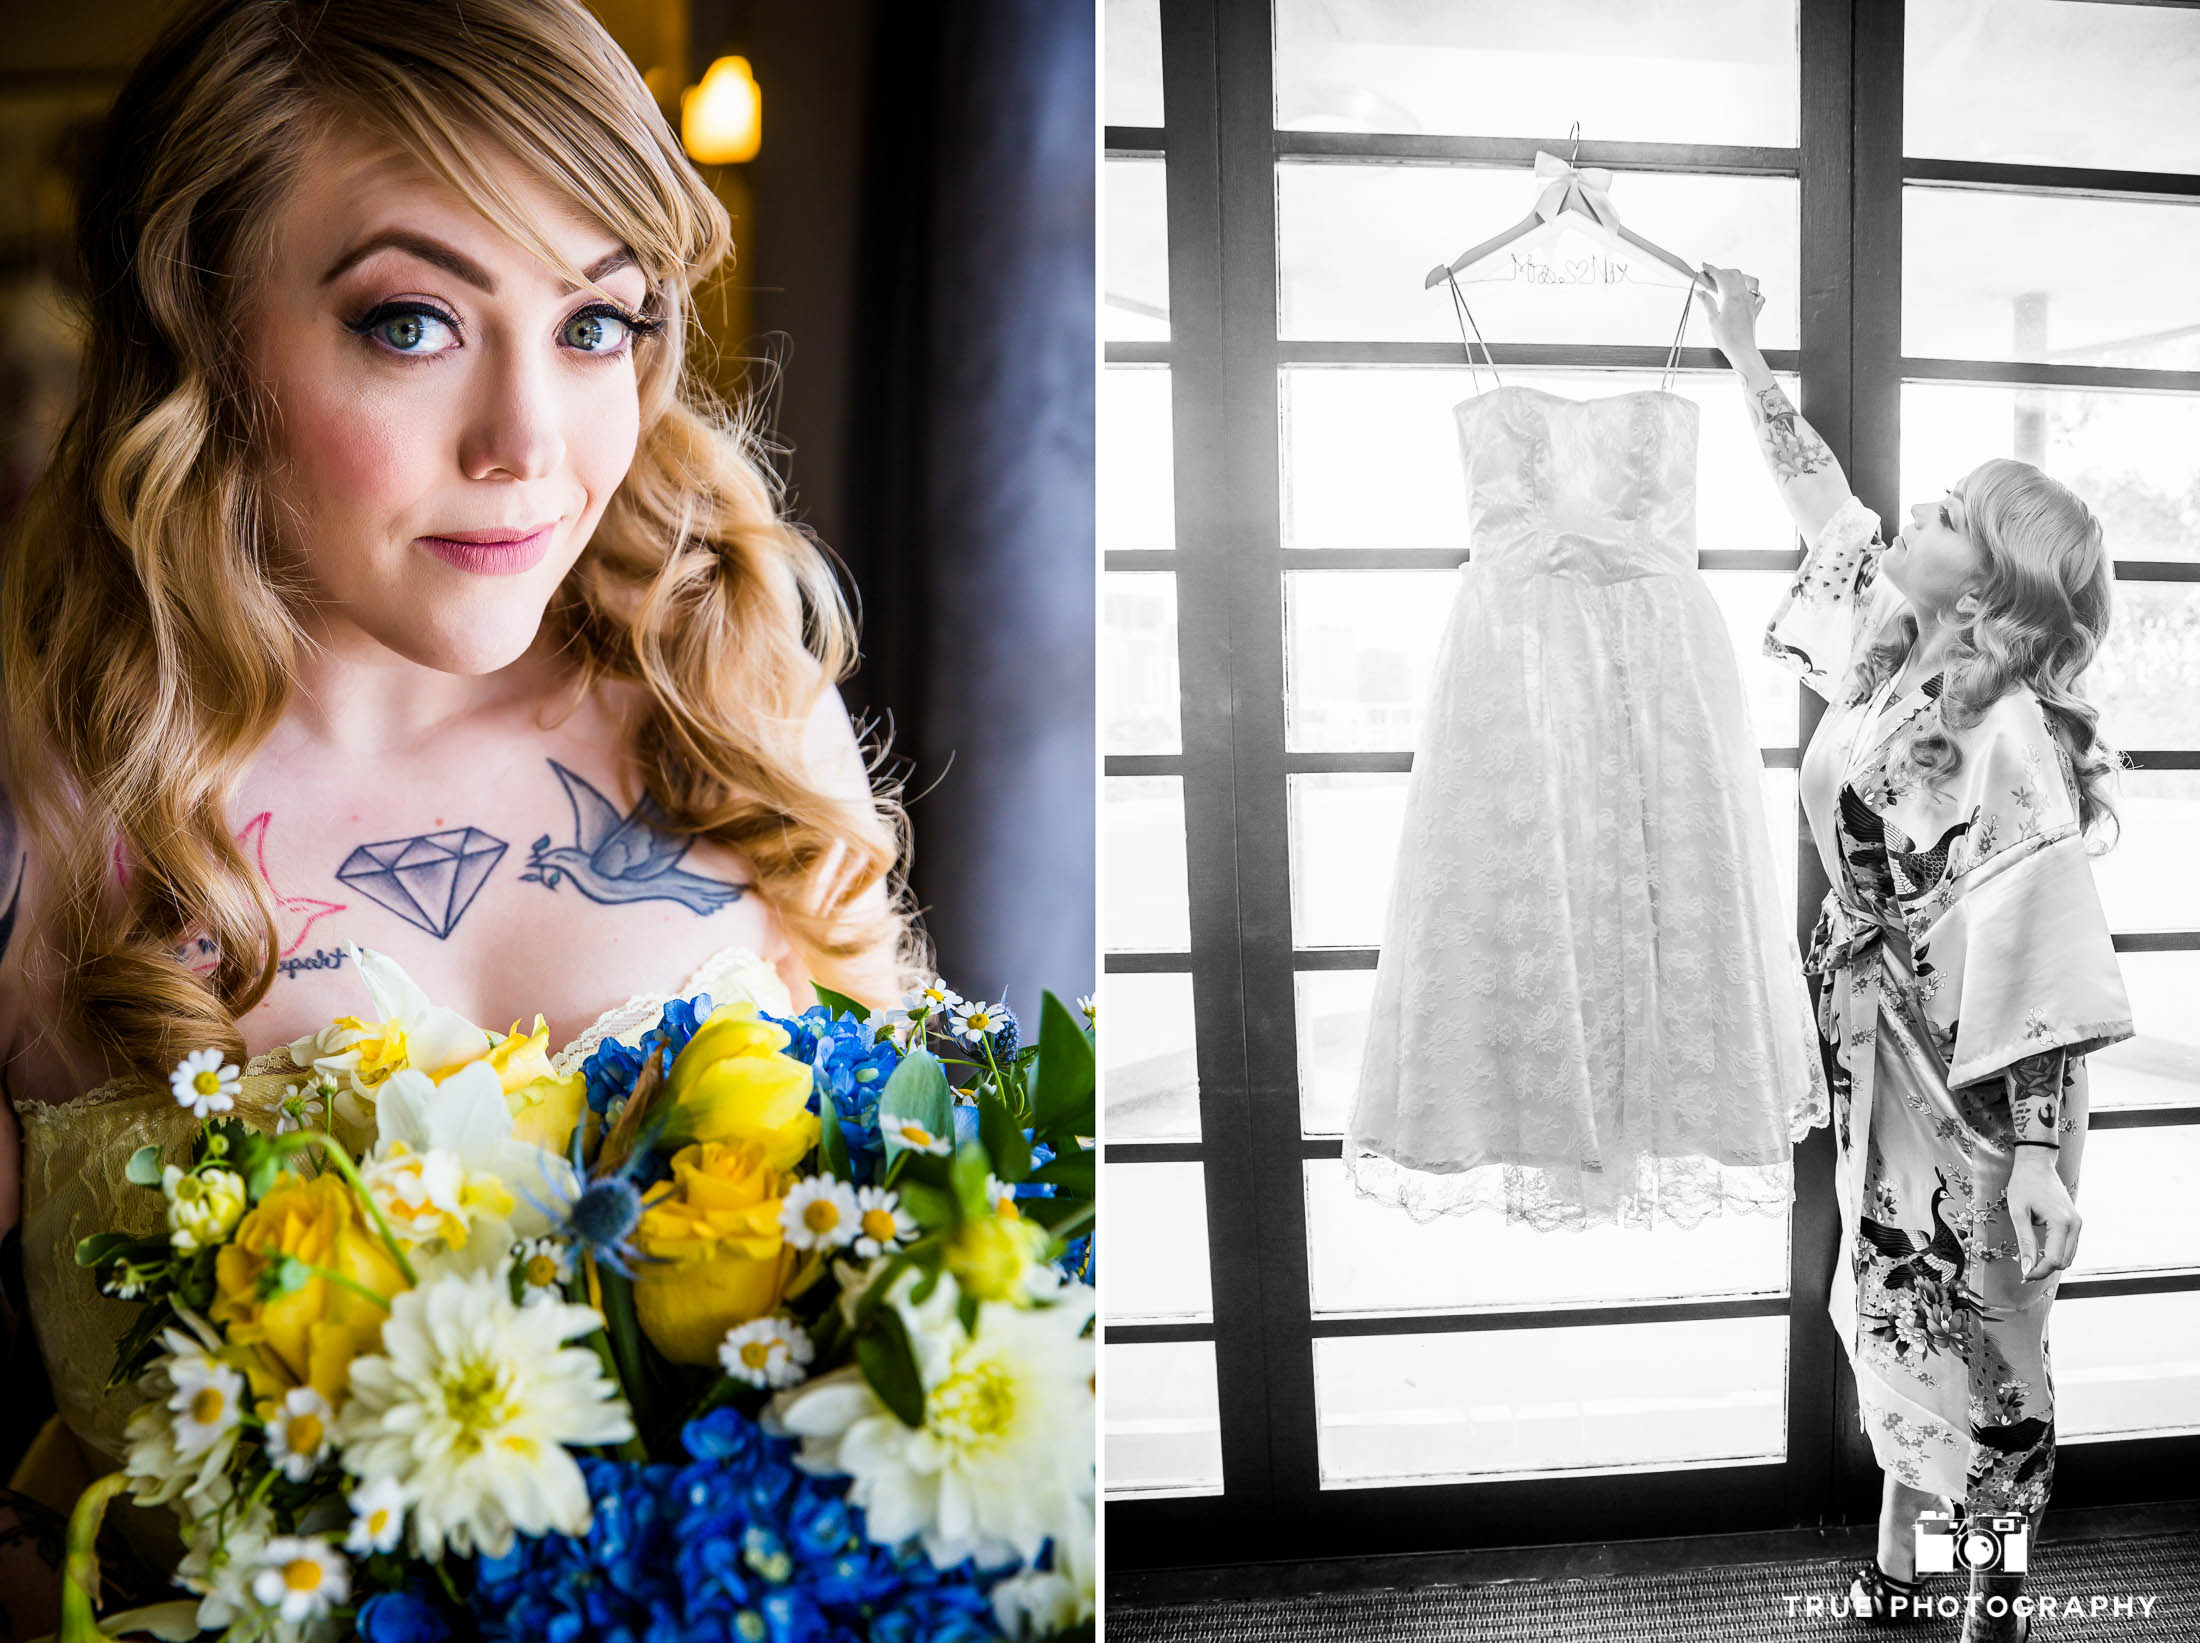 Bride posing with Wedding Dress and Bouquet of Flowers